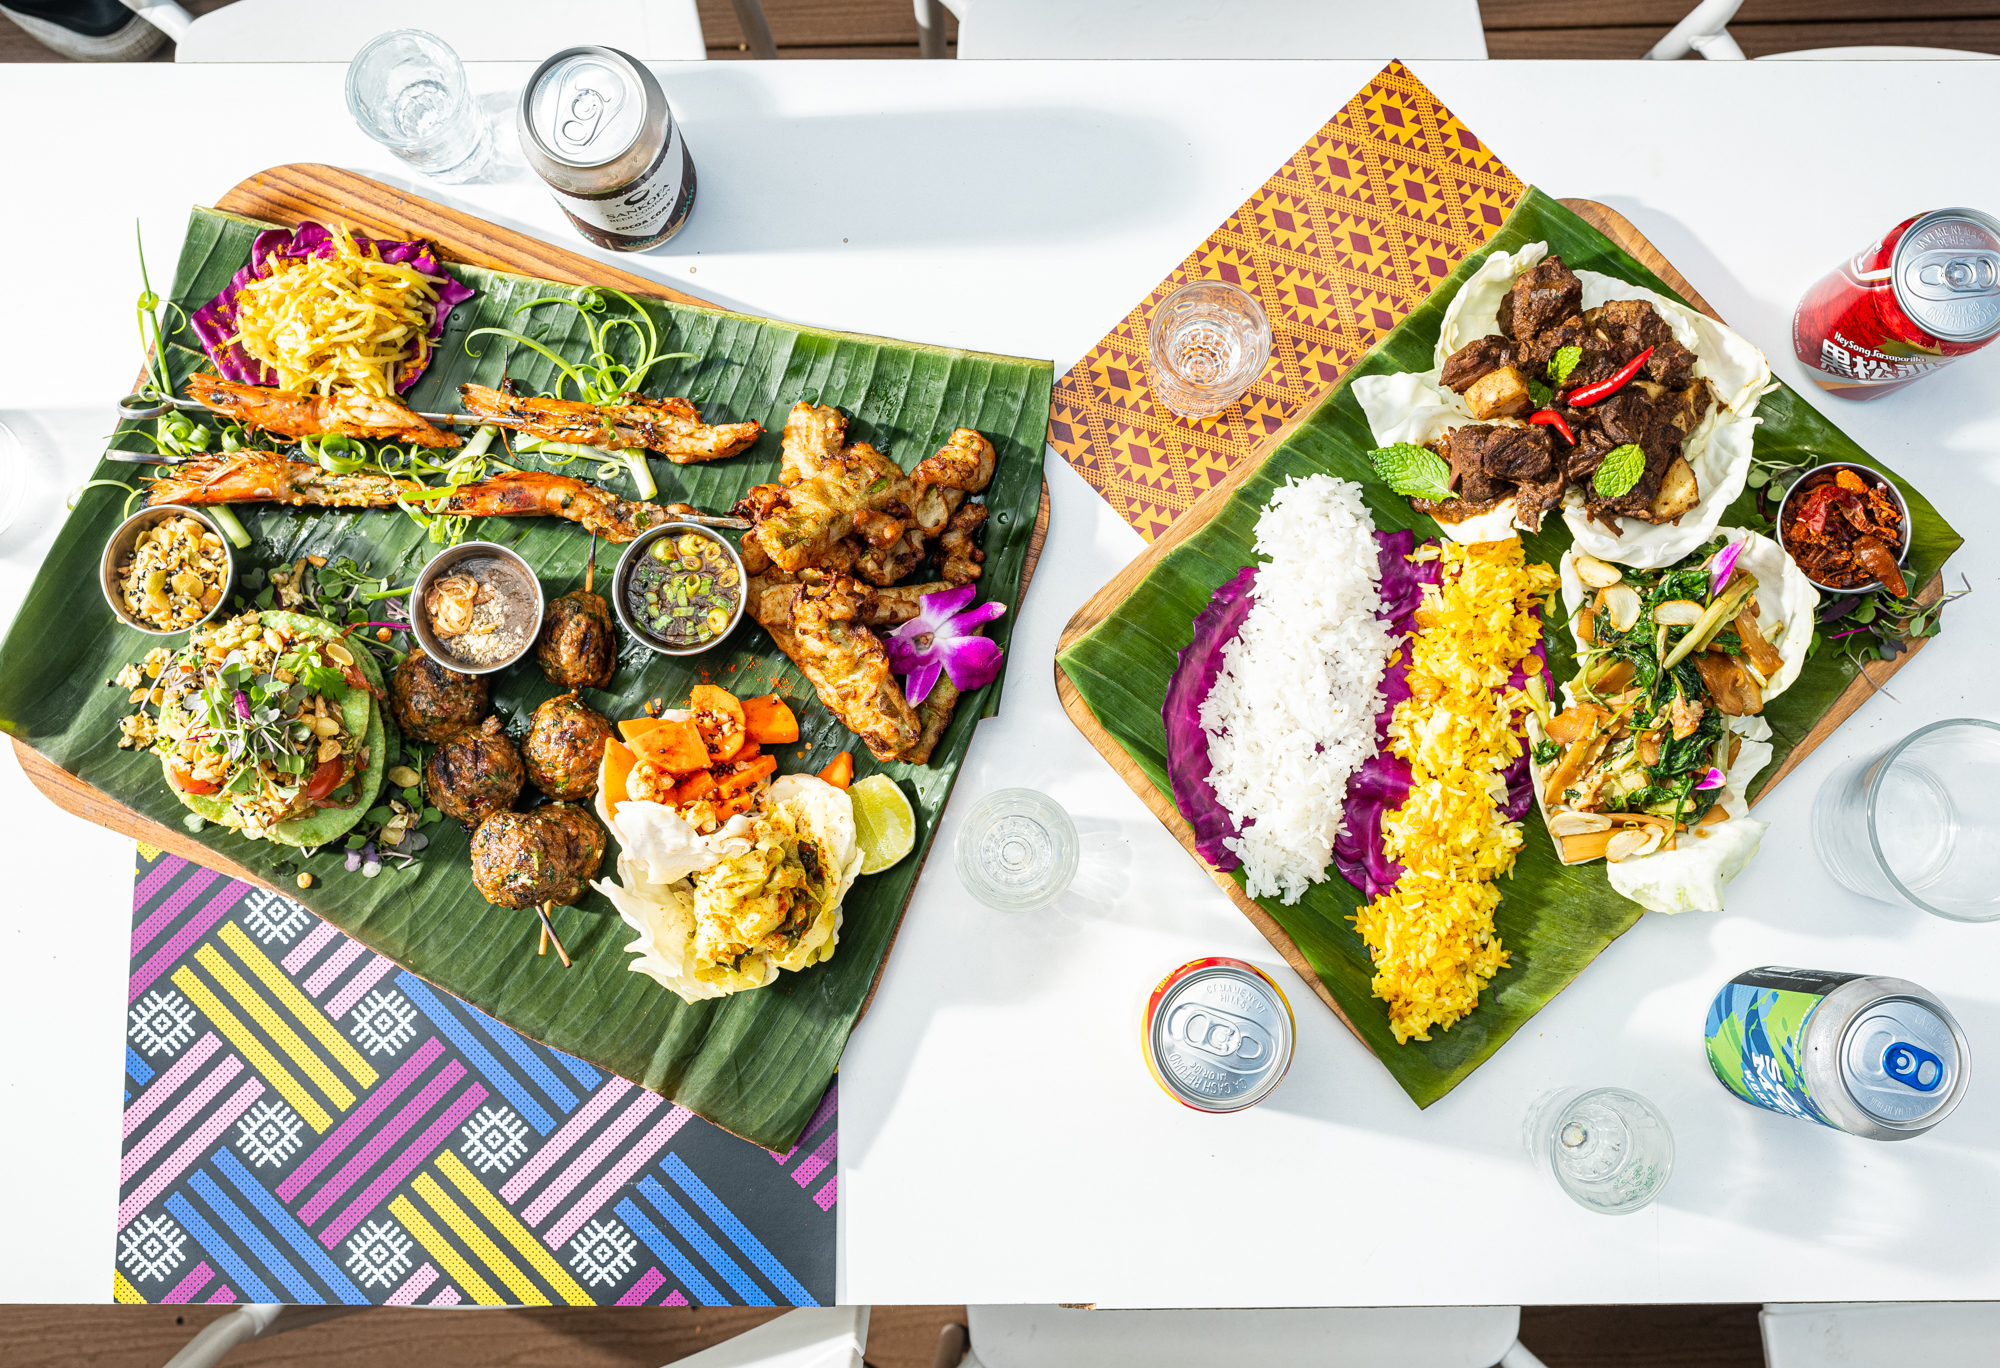 An overhead look at two trays full of Burmese dishes like gourd fritters, pork meatballs, grilled shrimp skewers, and tea leaf salad stacked in between green wontons